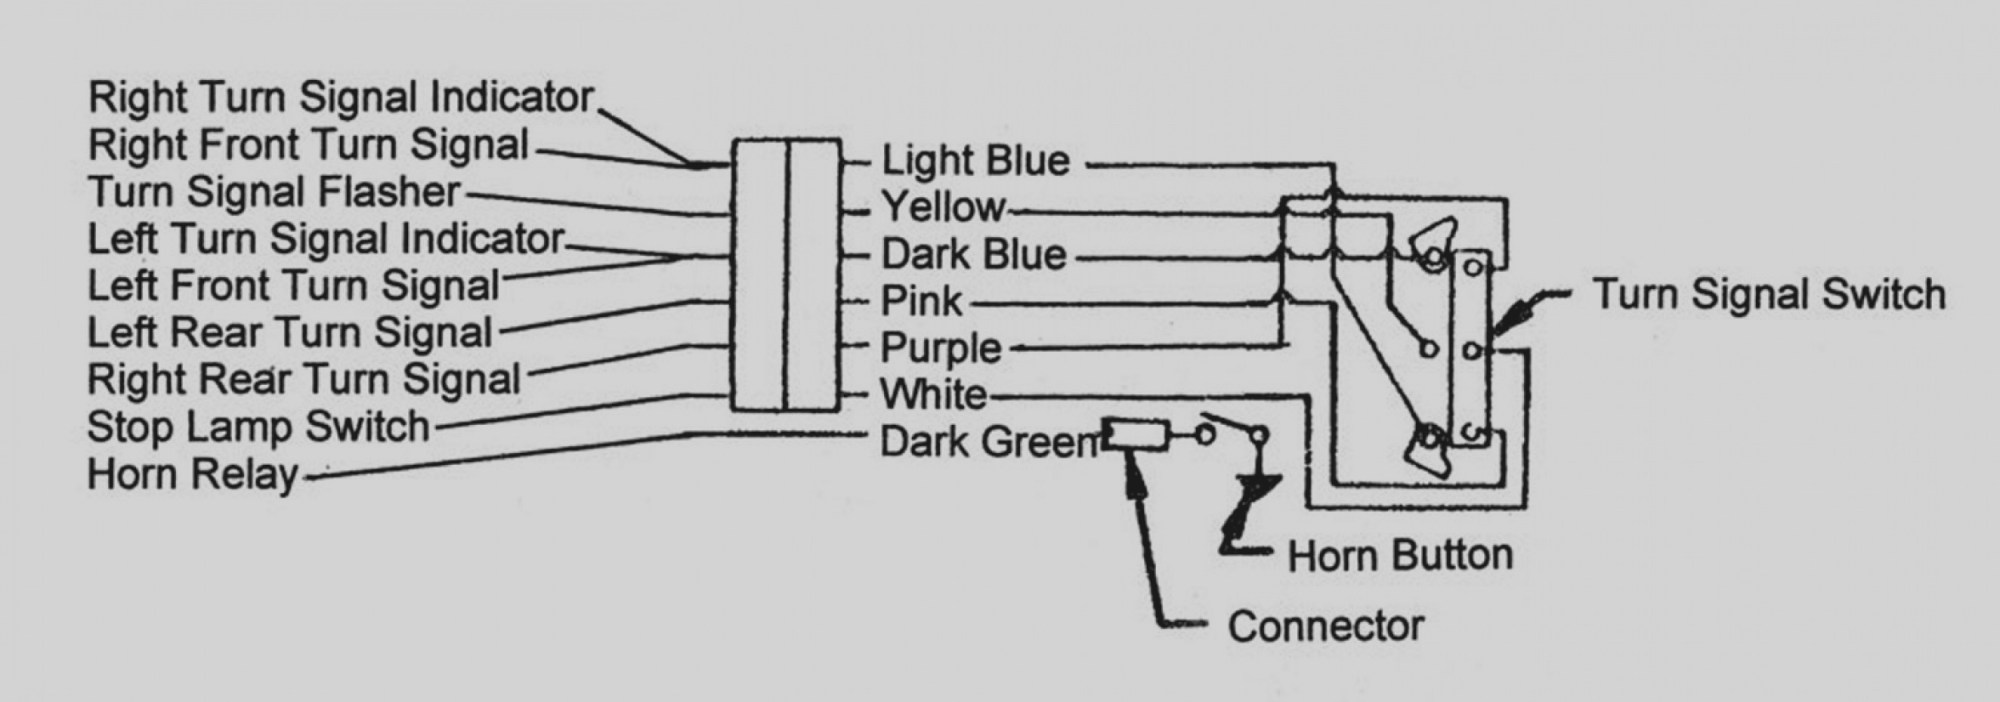 hight resolution of wiring diagram chevy steering column wiring diagram used 1957 chevy steering column wiring diagram 1957 chevrolet steering column wiring diagram